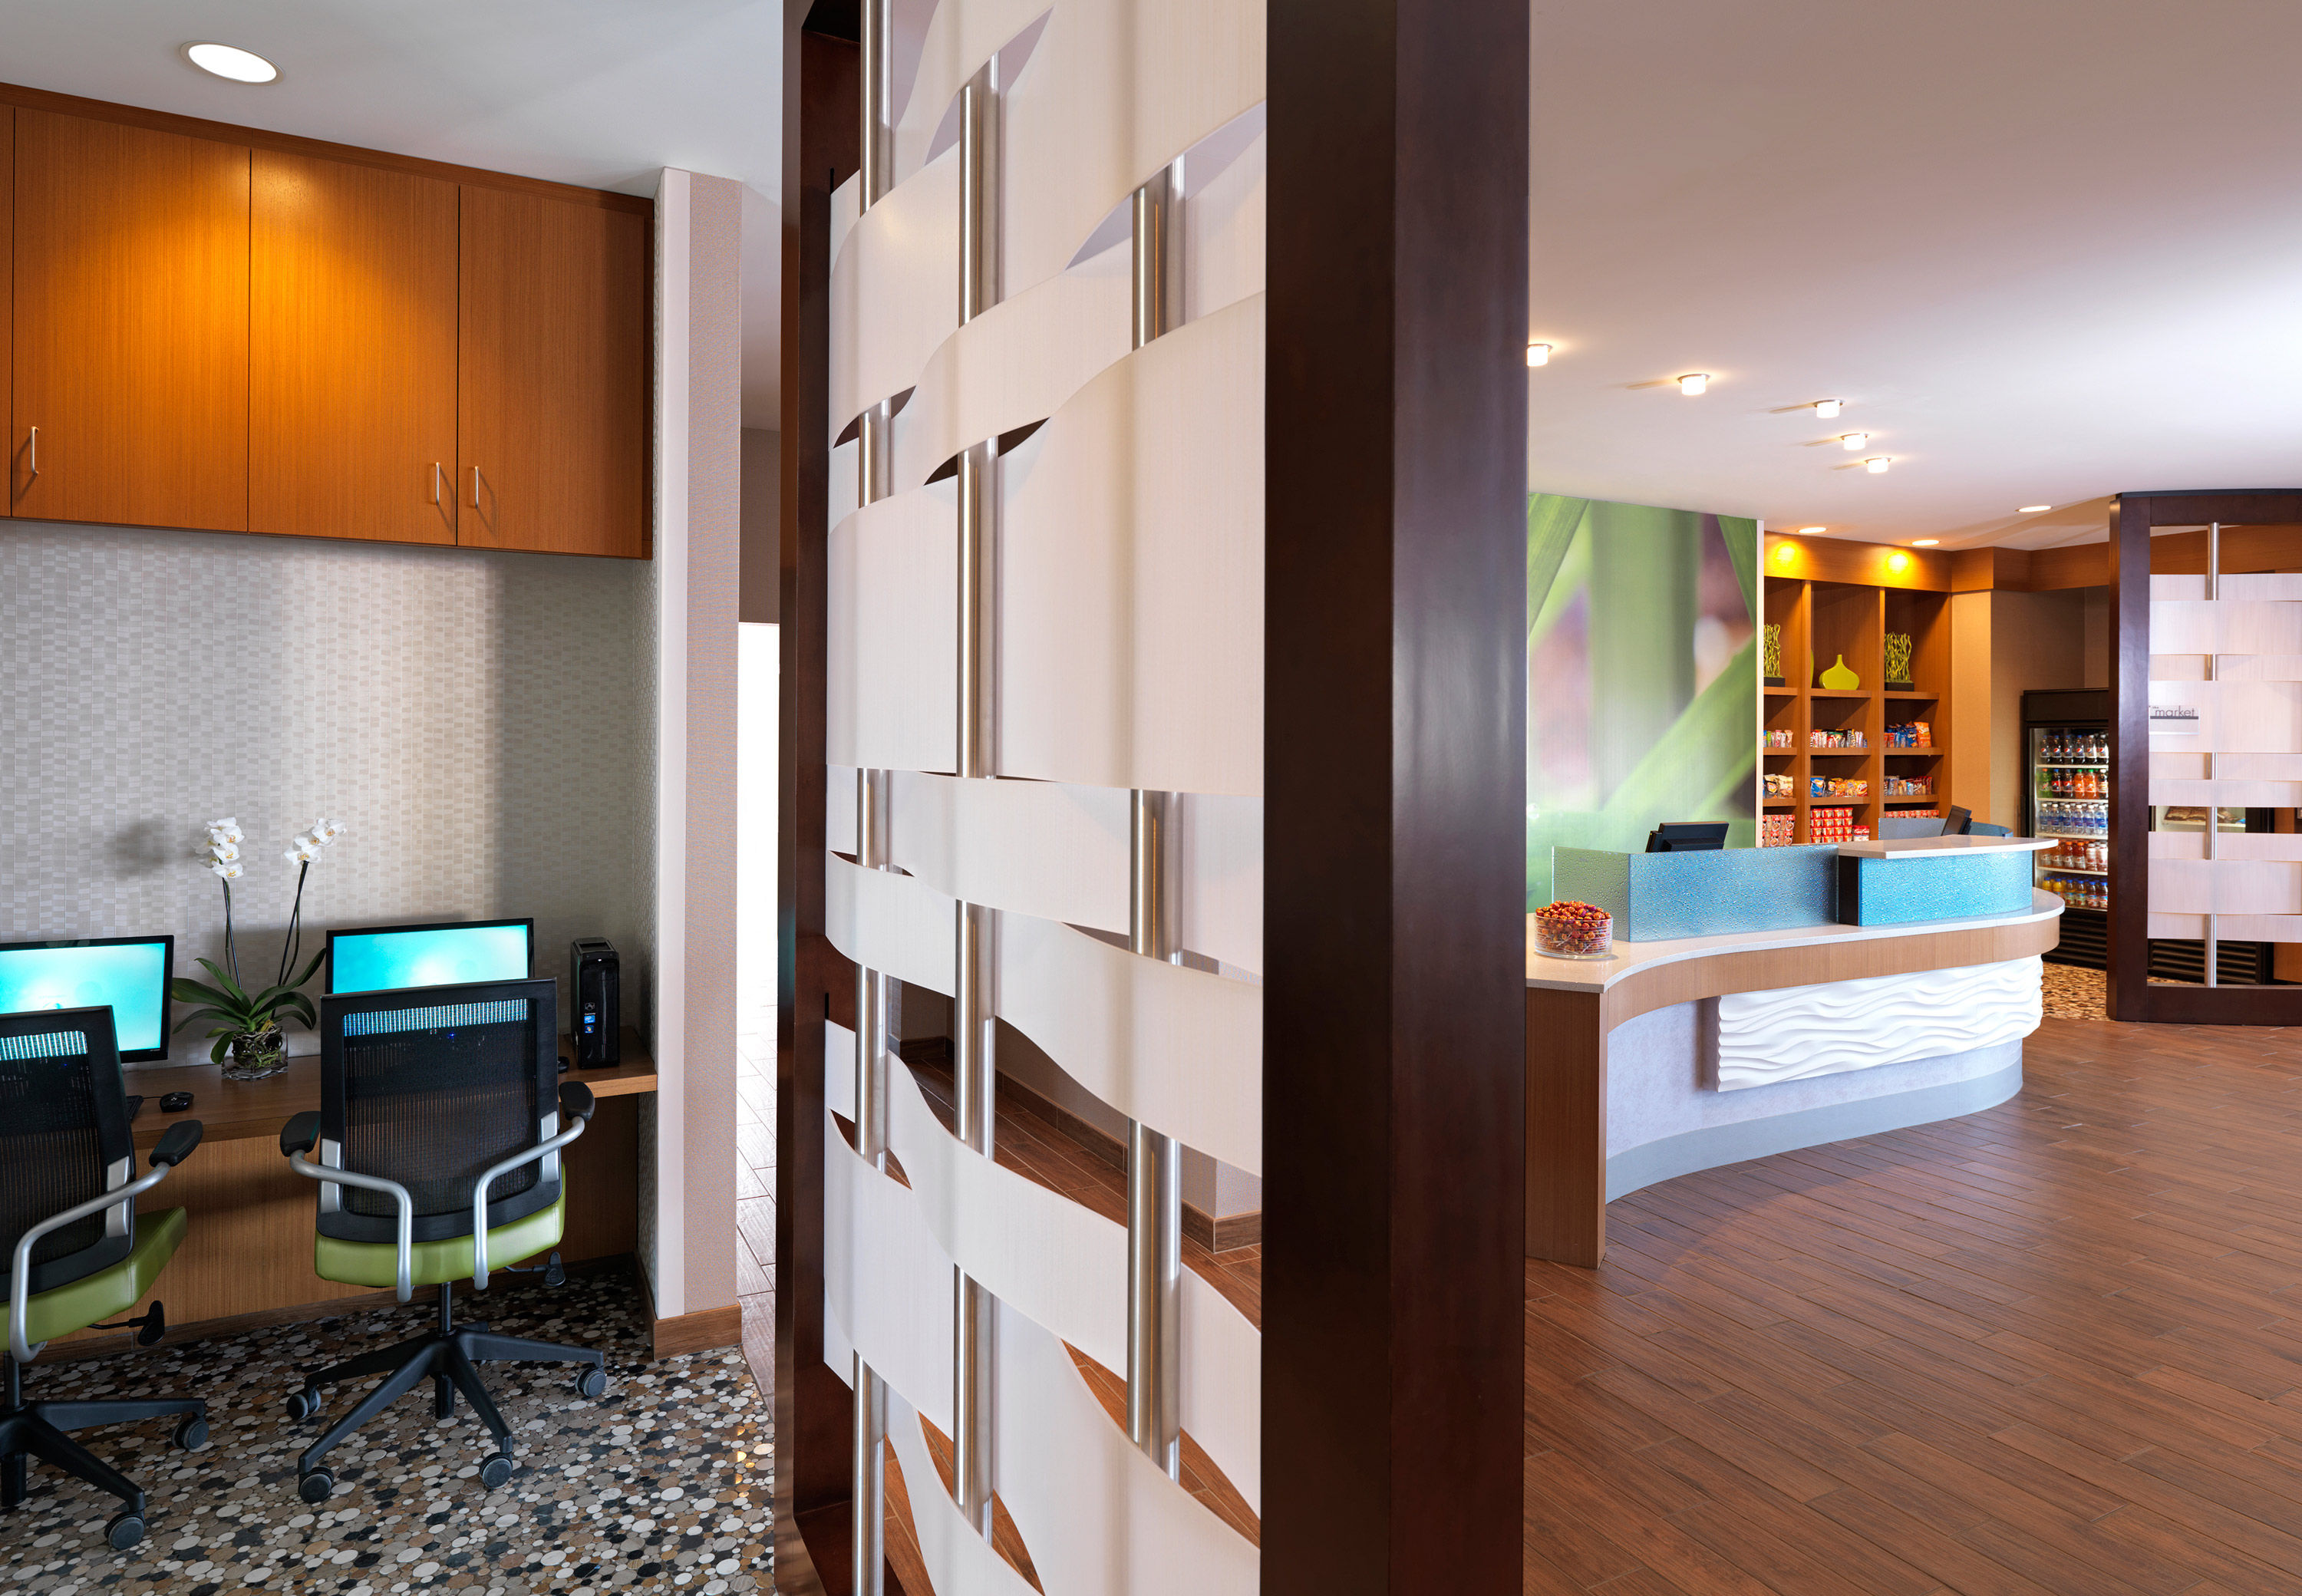 SpringHill Suites by Marriott Buffalo Airport image 14